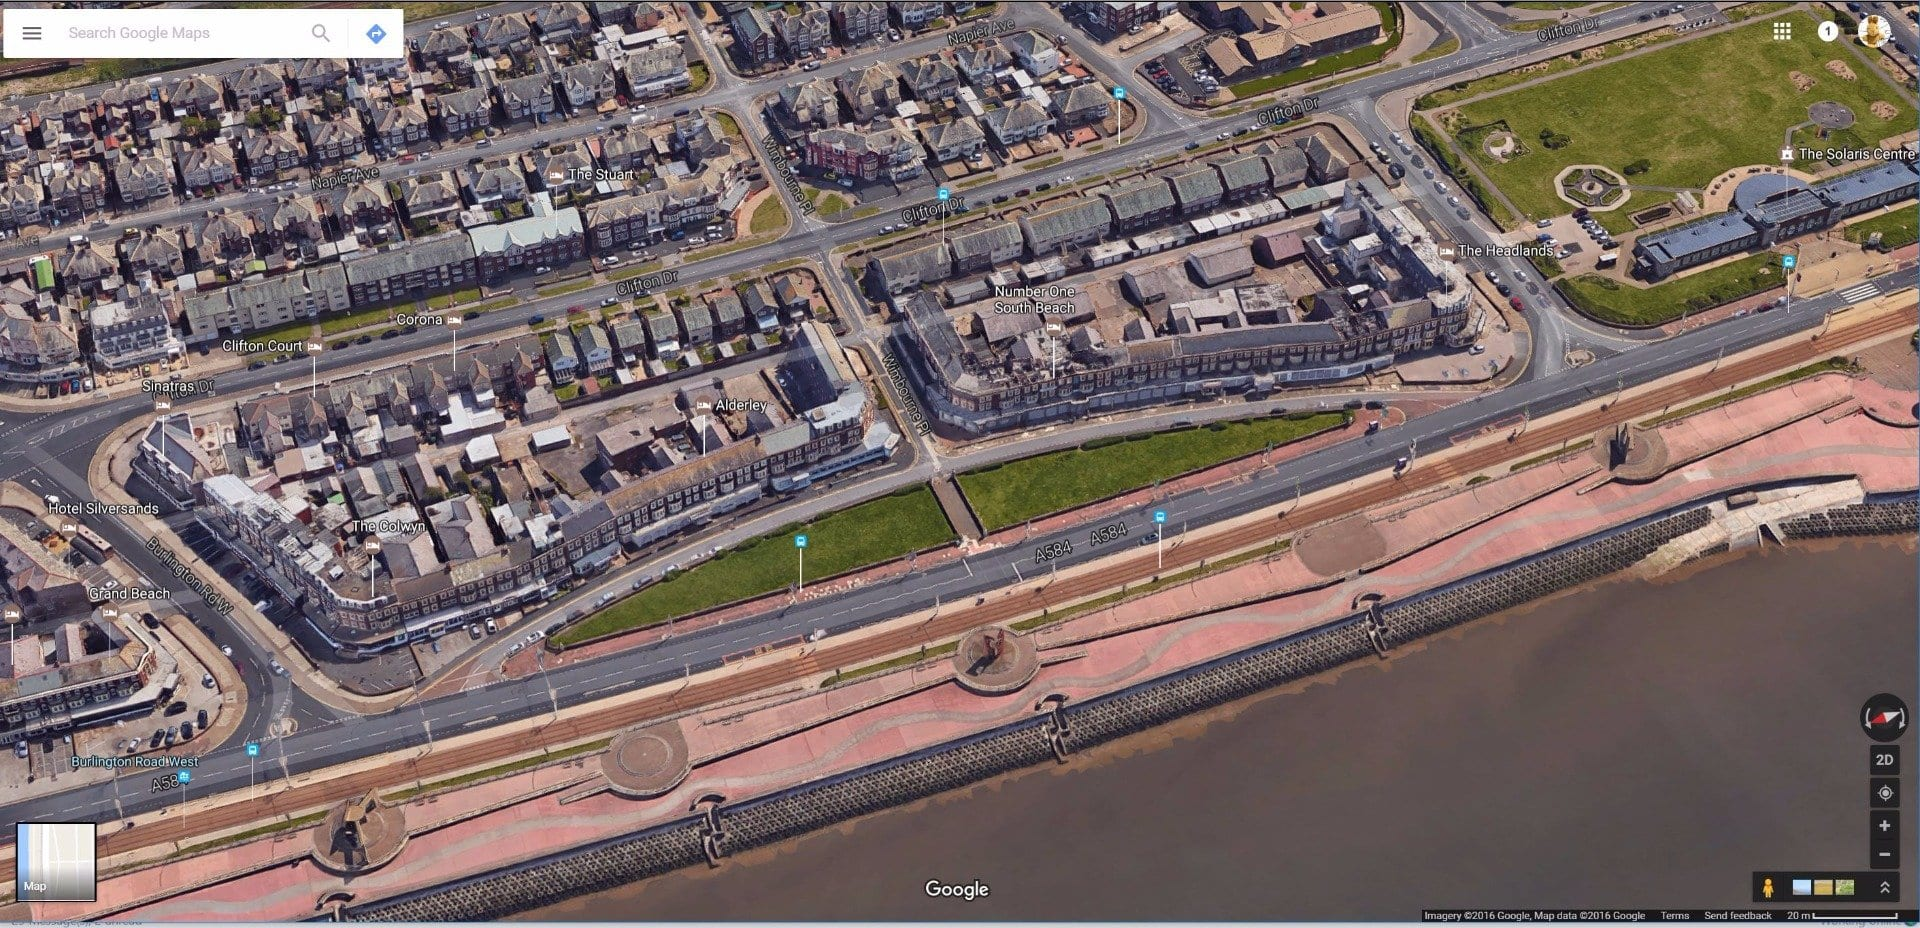 New South Promenade Blackpool, holiday accommodation. Photo: Google maps